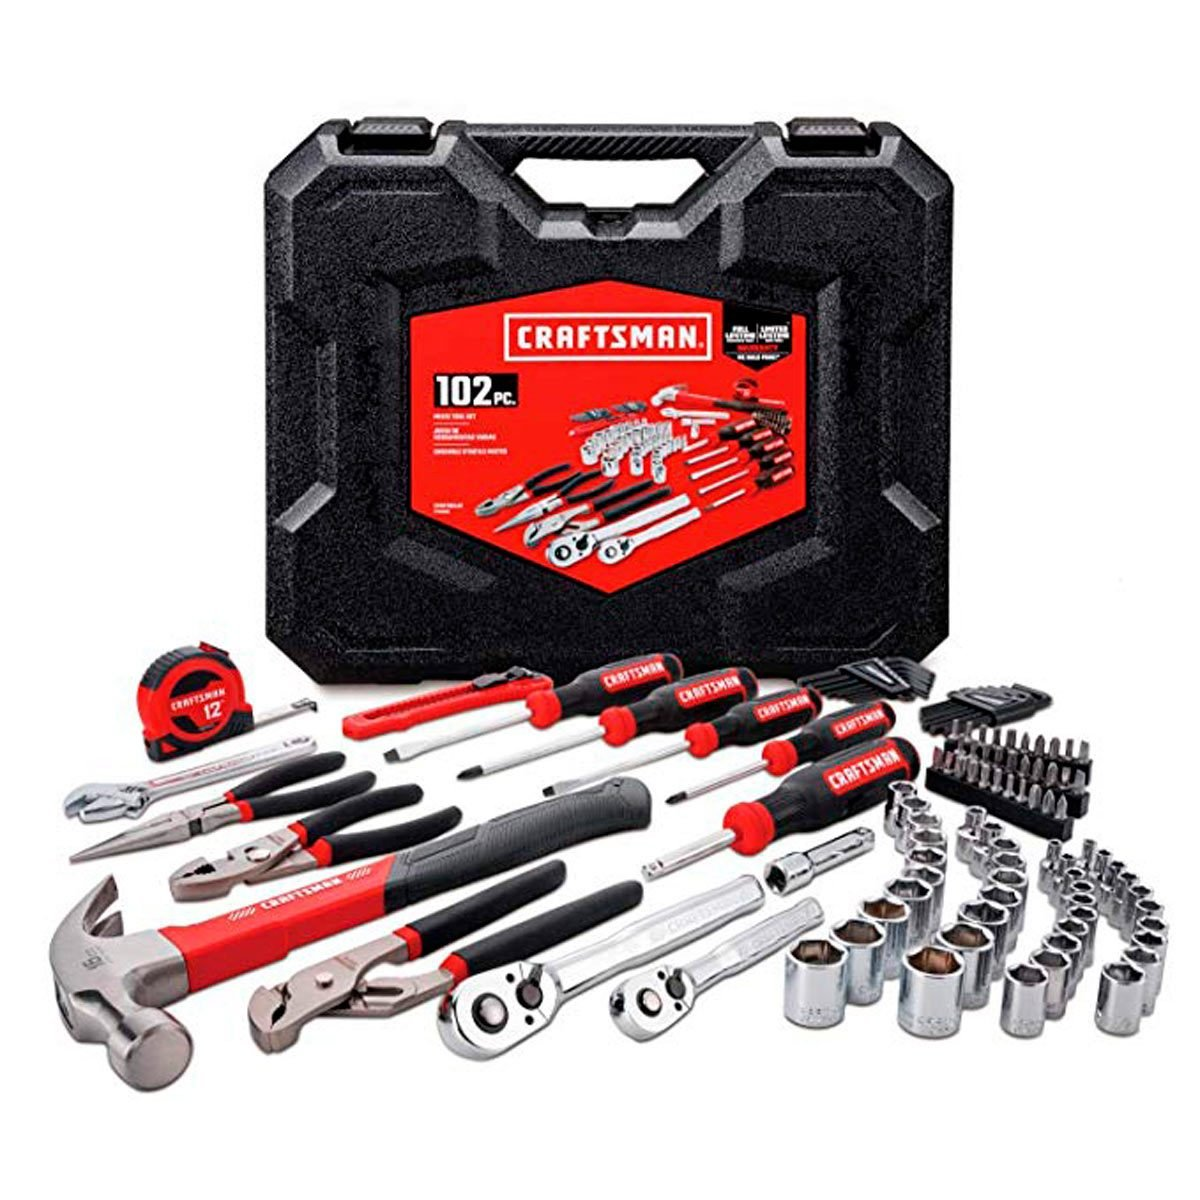 Craftsman-Home-Tool-Kit